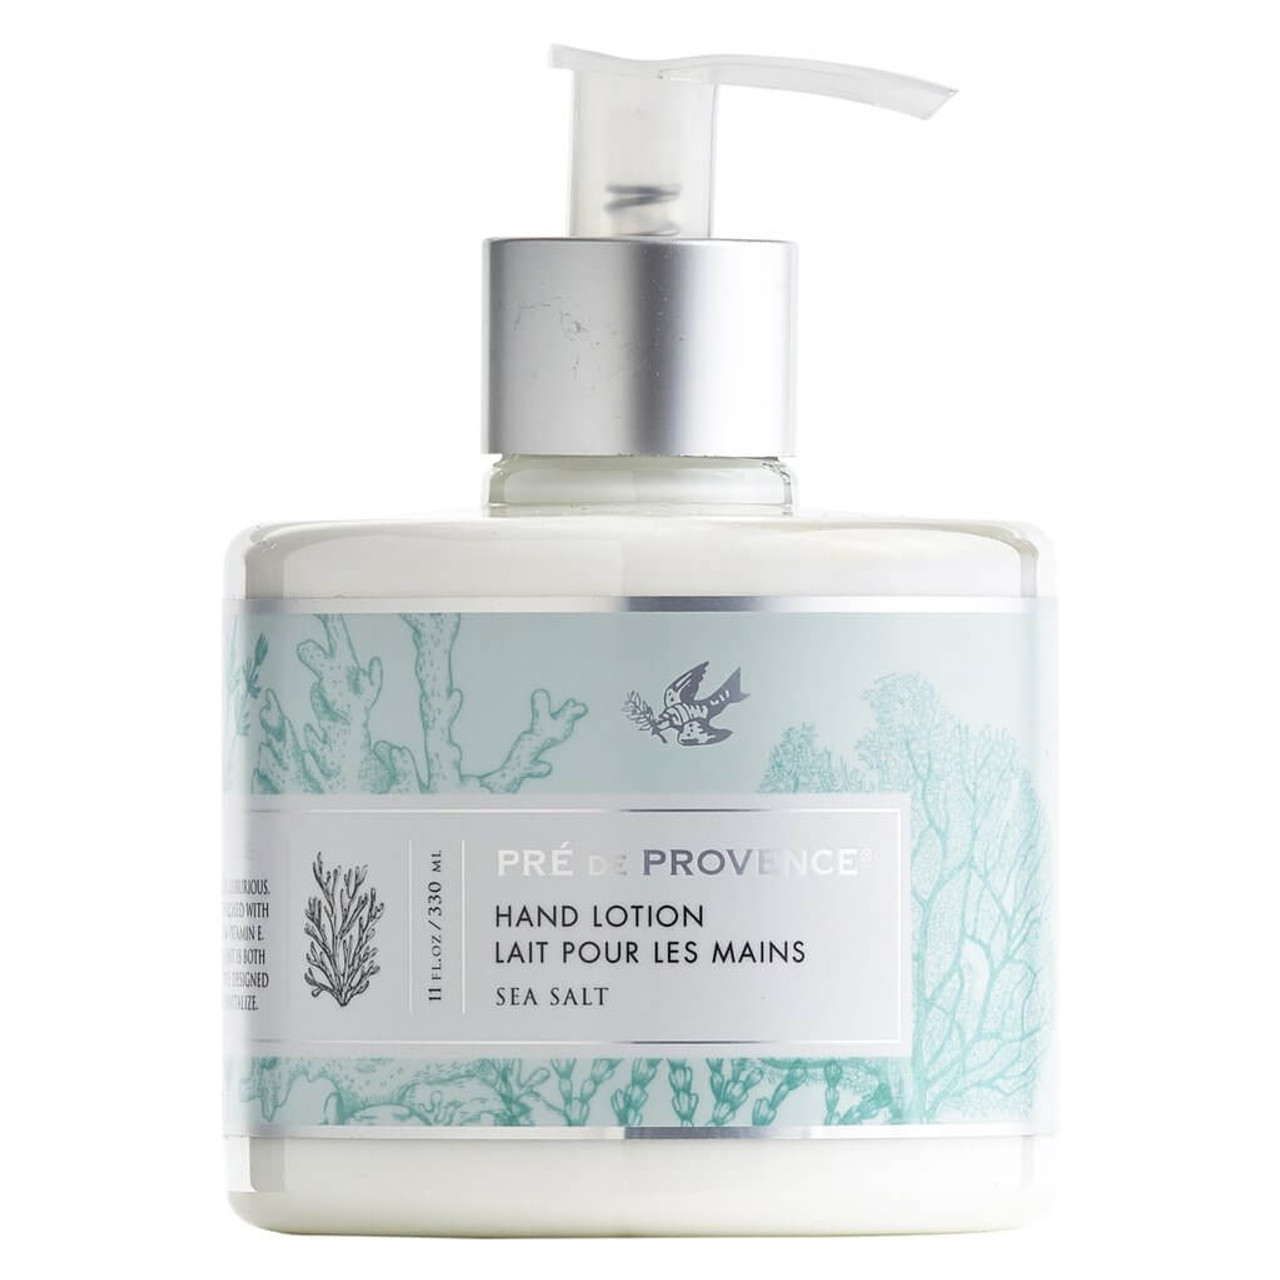 This delicately fragranced, luxurious, silky smooth lotion is enriched with shea butter, glycerin, and vitamin E. This multi-tasking emollient is both nourishing and protective; designed to deeply hydrate and revitalize. 11 oz.